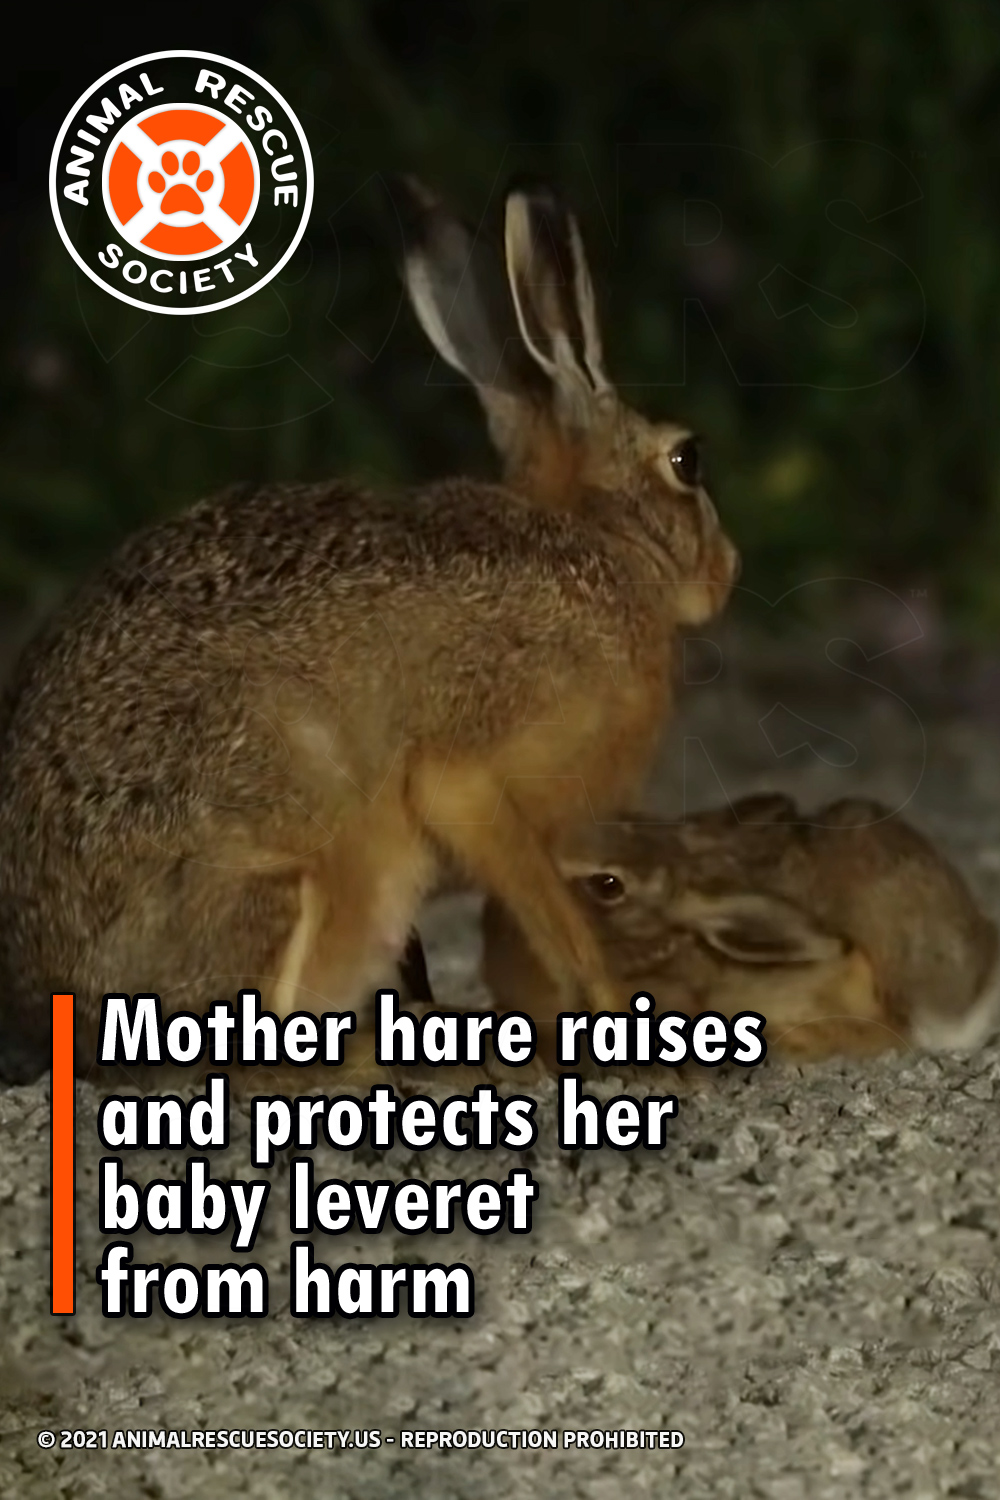 Mother hare raises and protects her baby leveret from harm